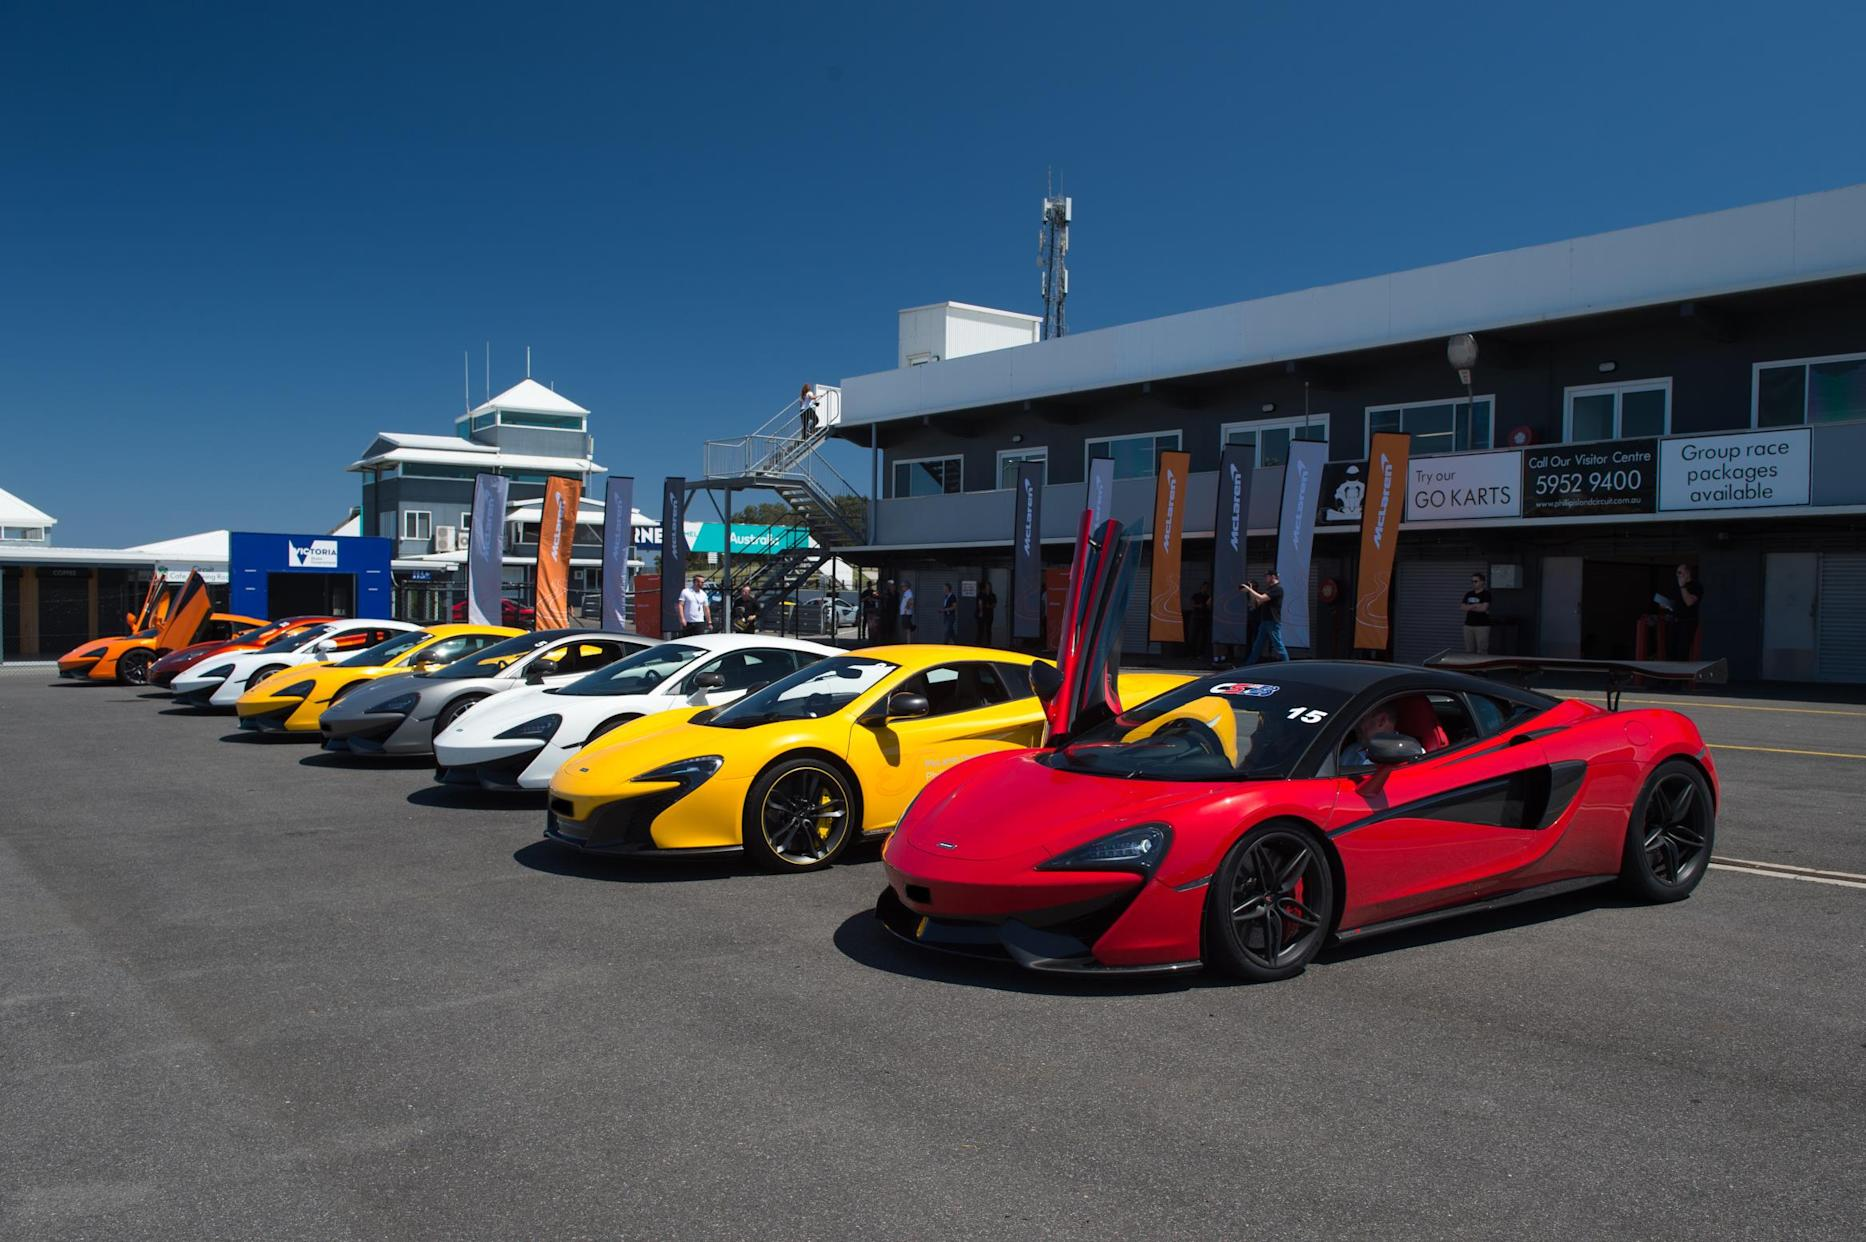 A track day provides a high-octane day out for Dads